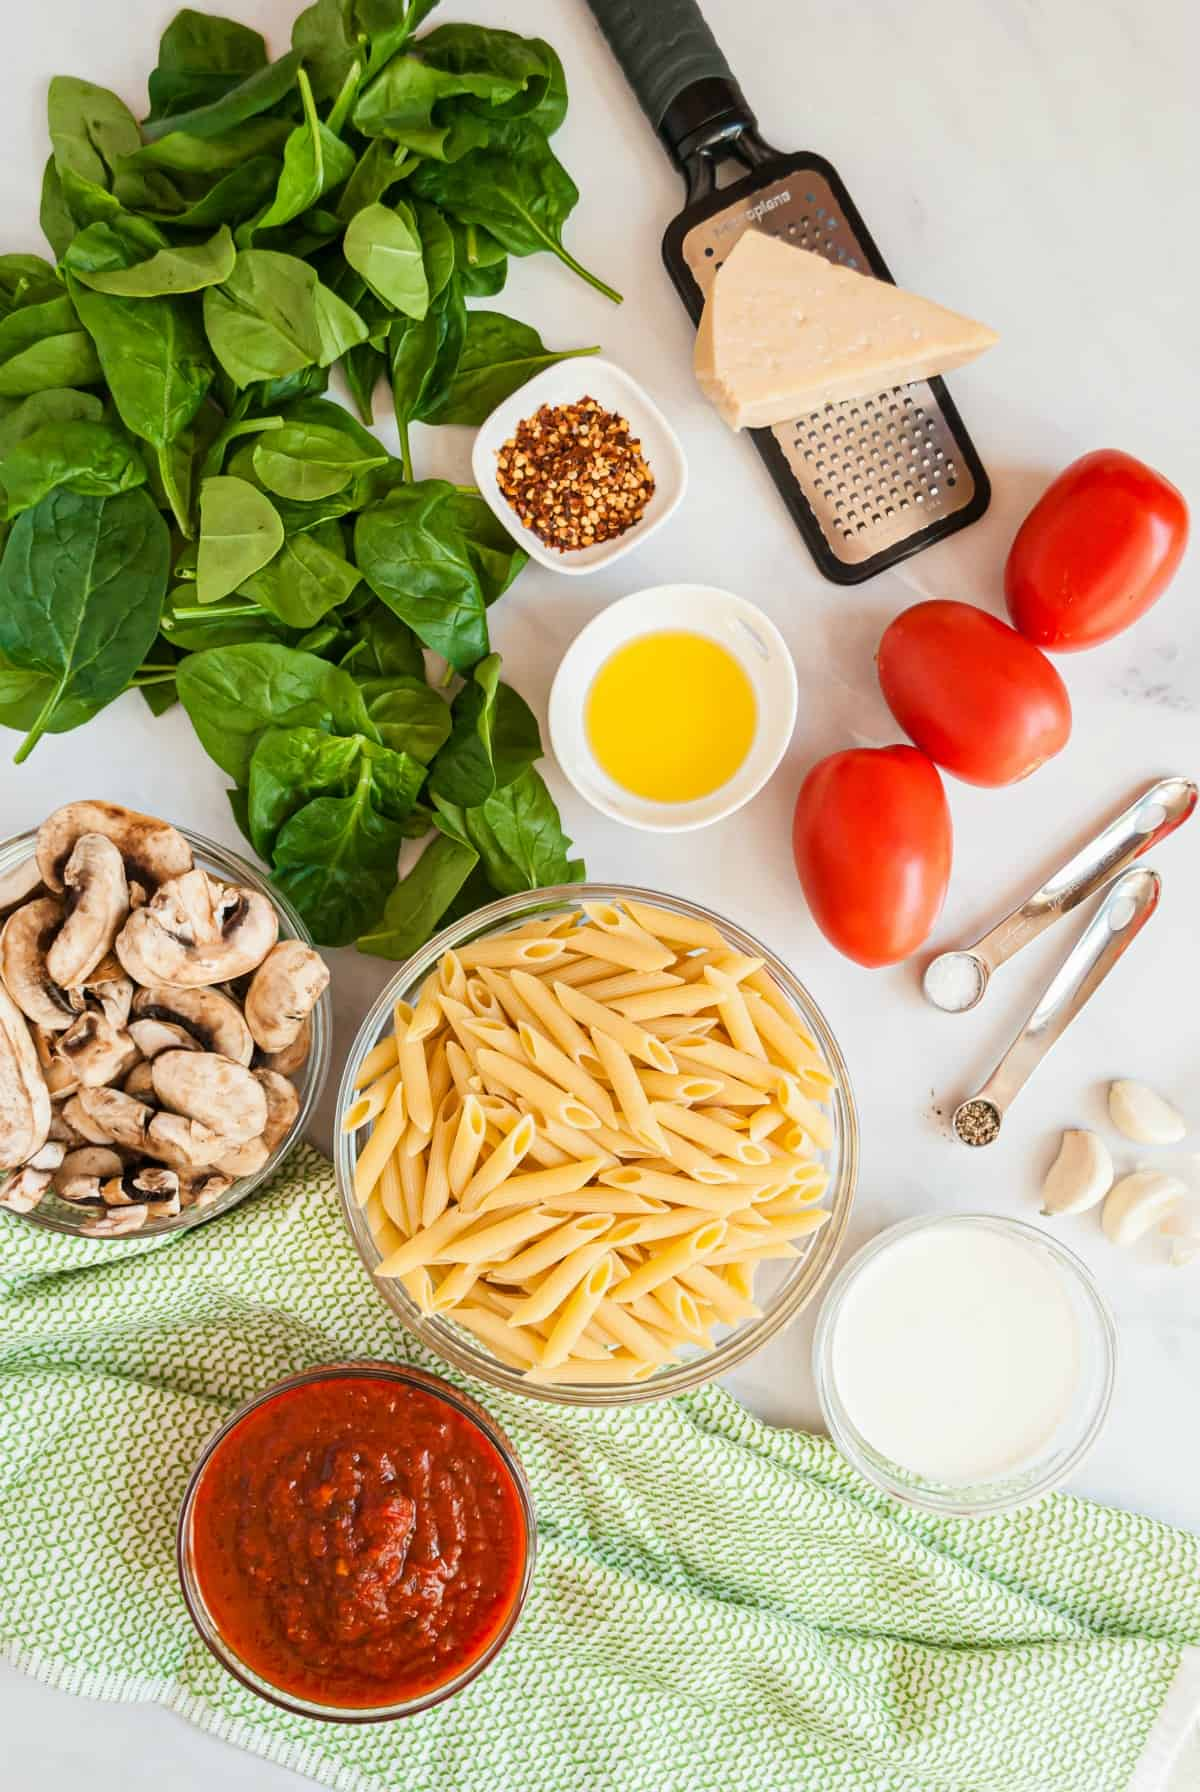 Picture of all the ingredients needed to make penne rosa.